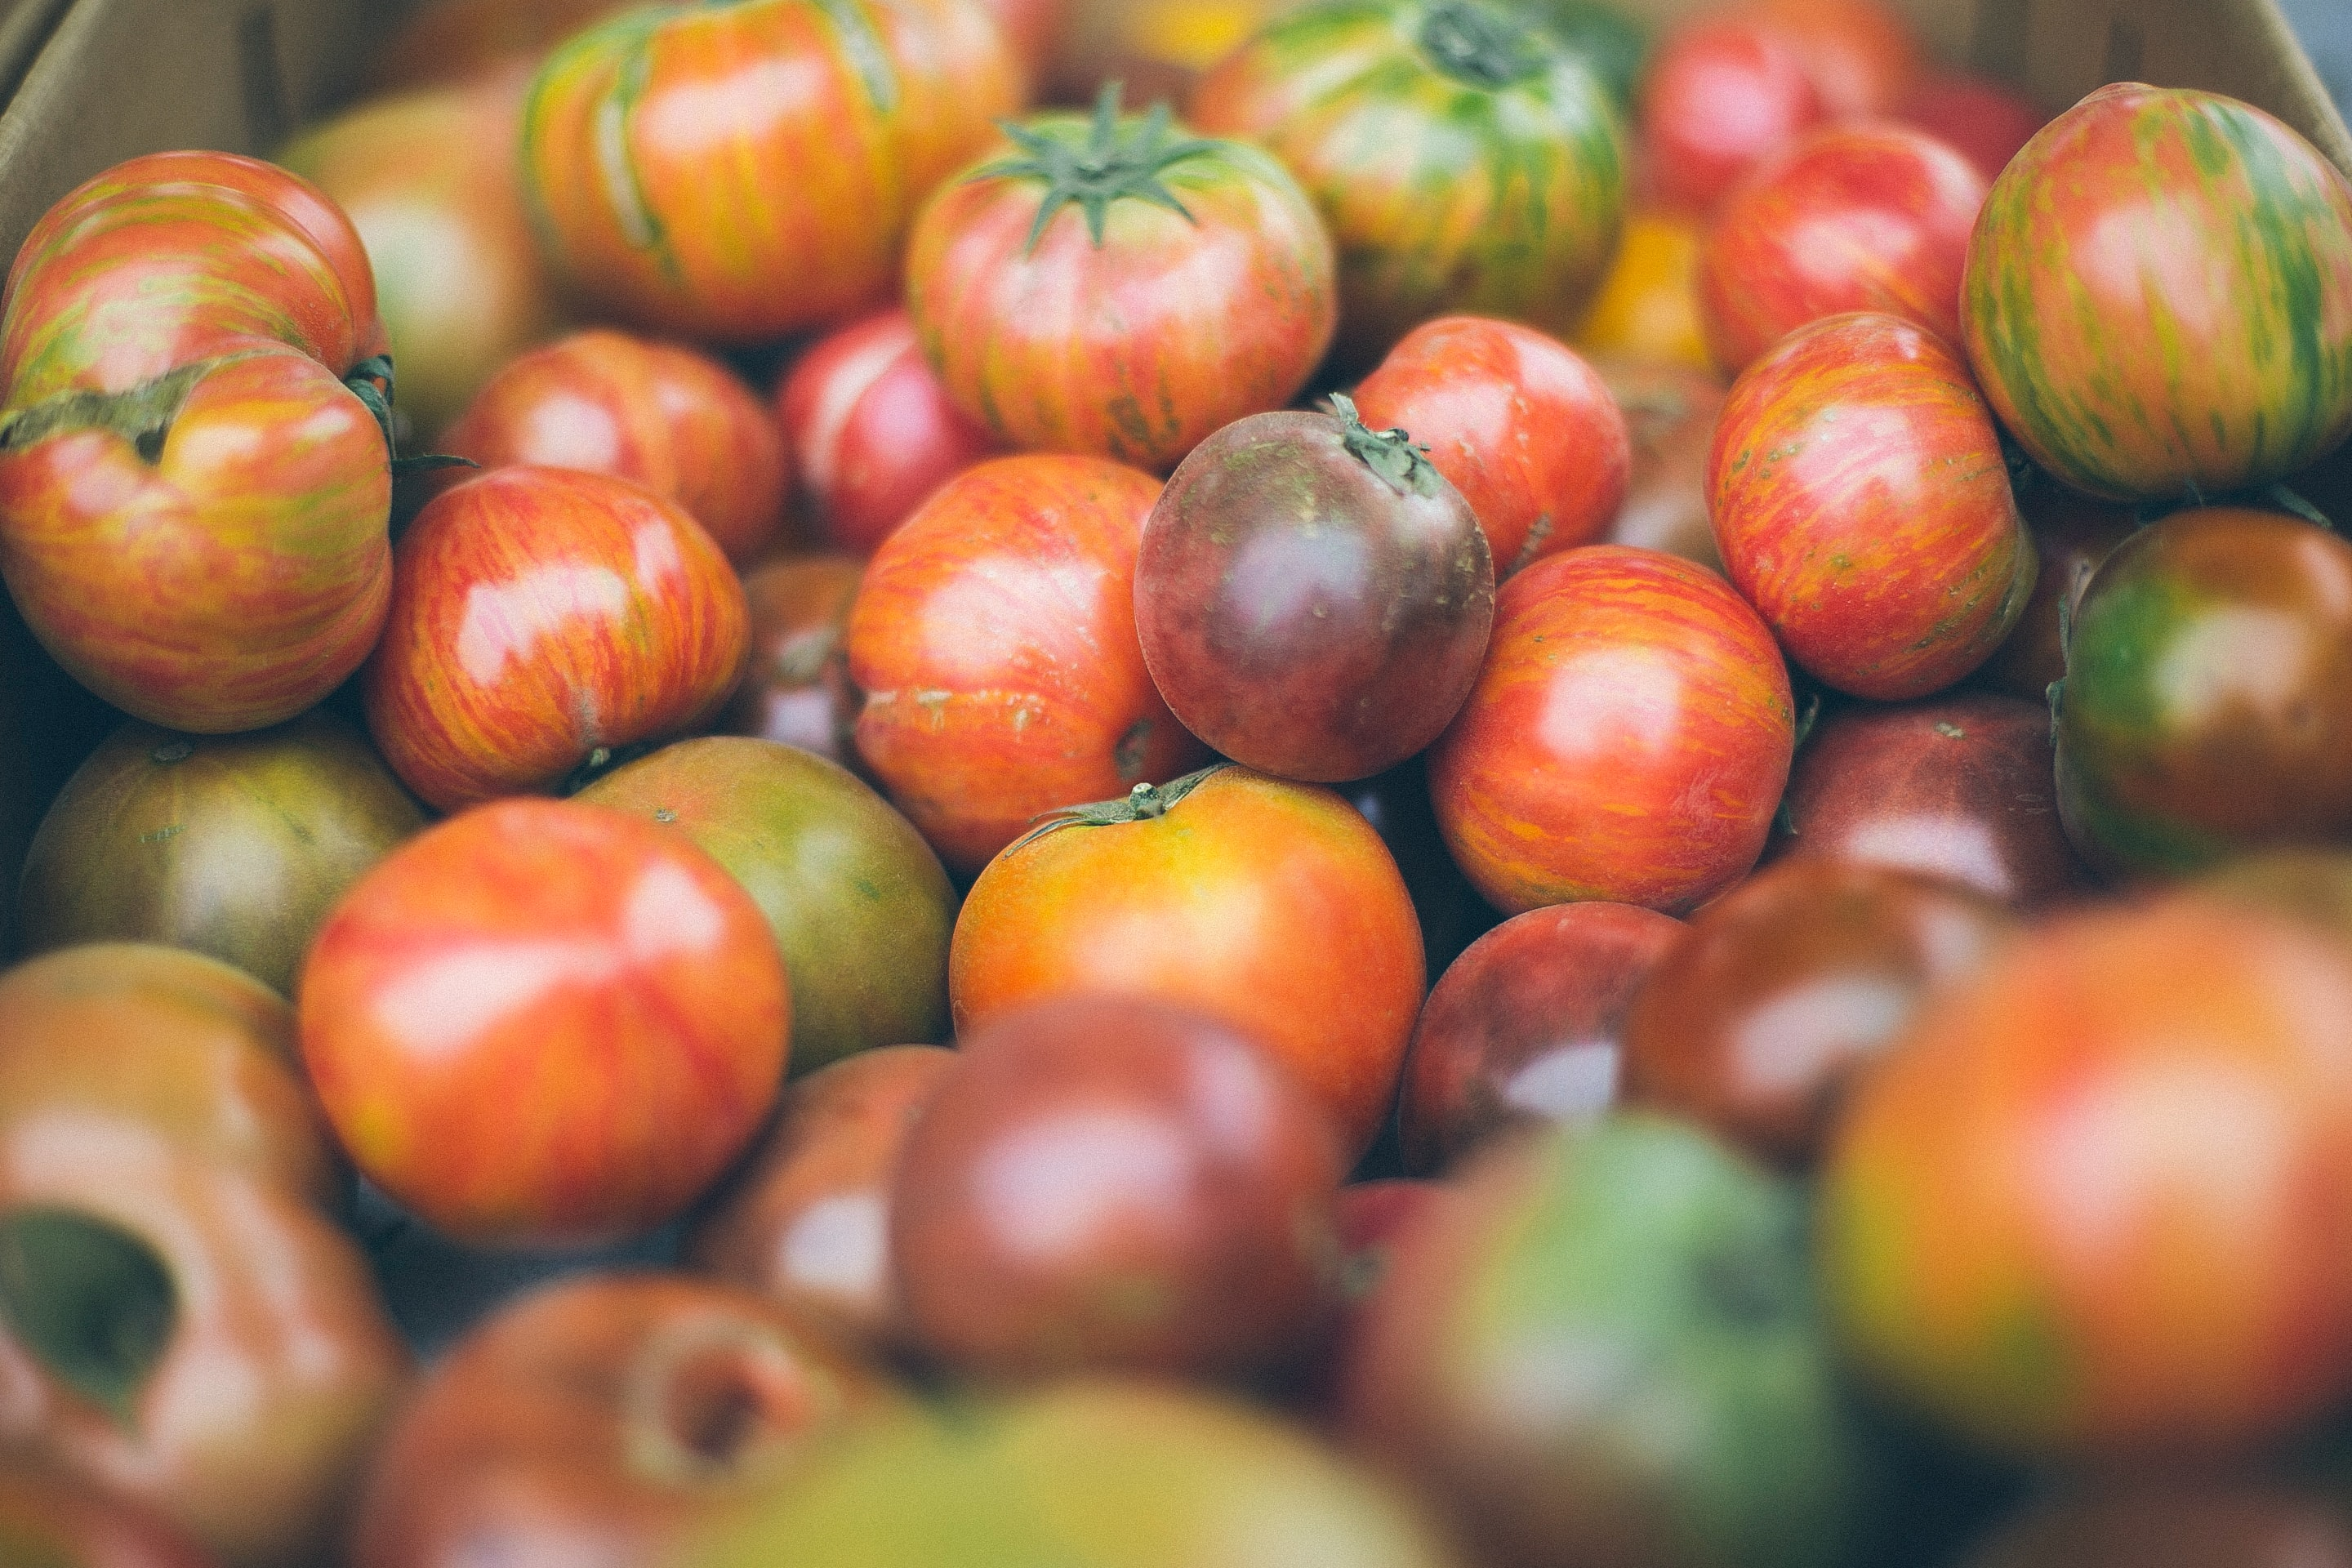 A bunch of multi-color heirloom tomatoes